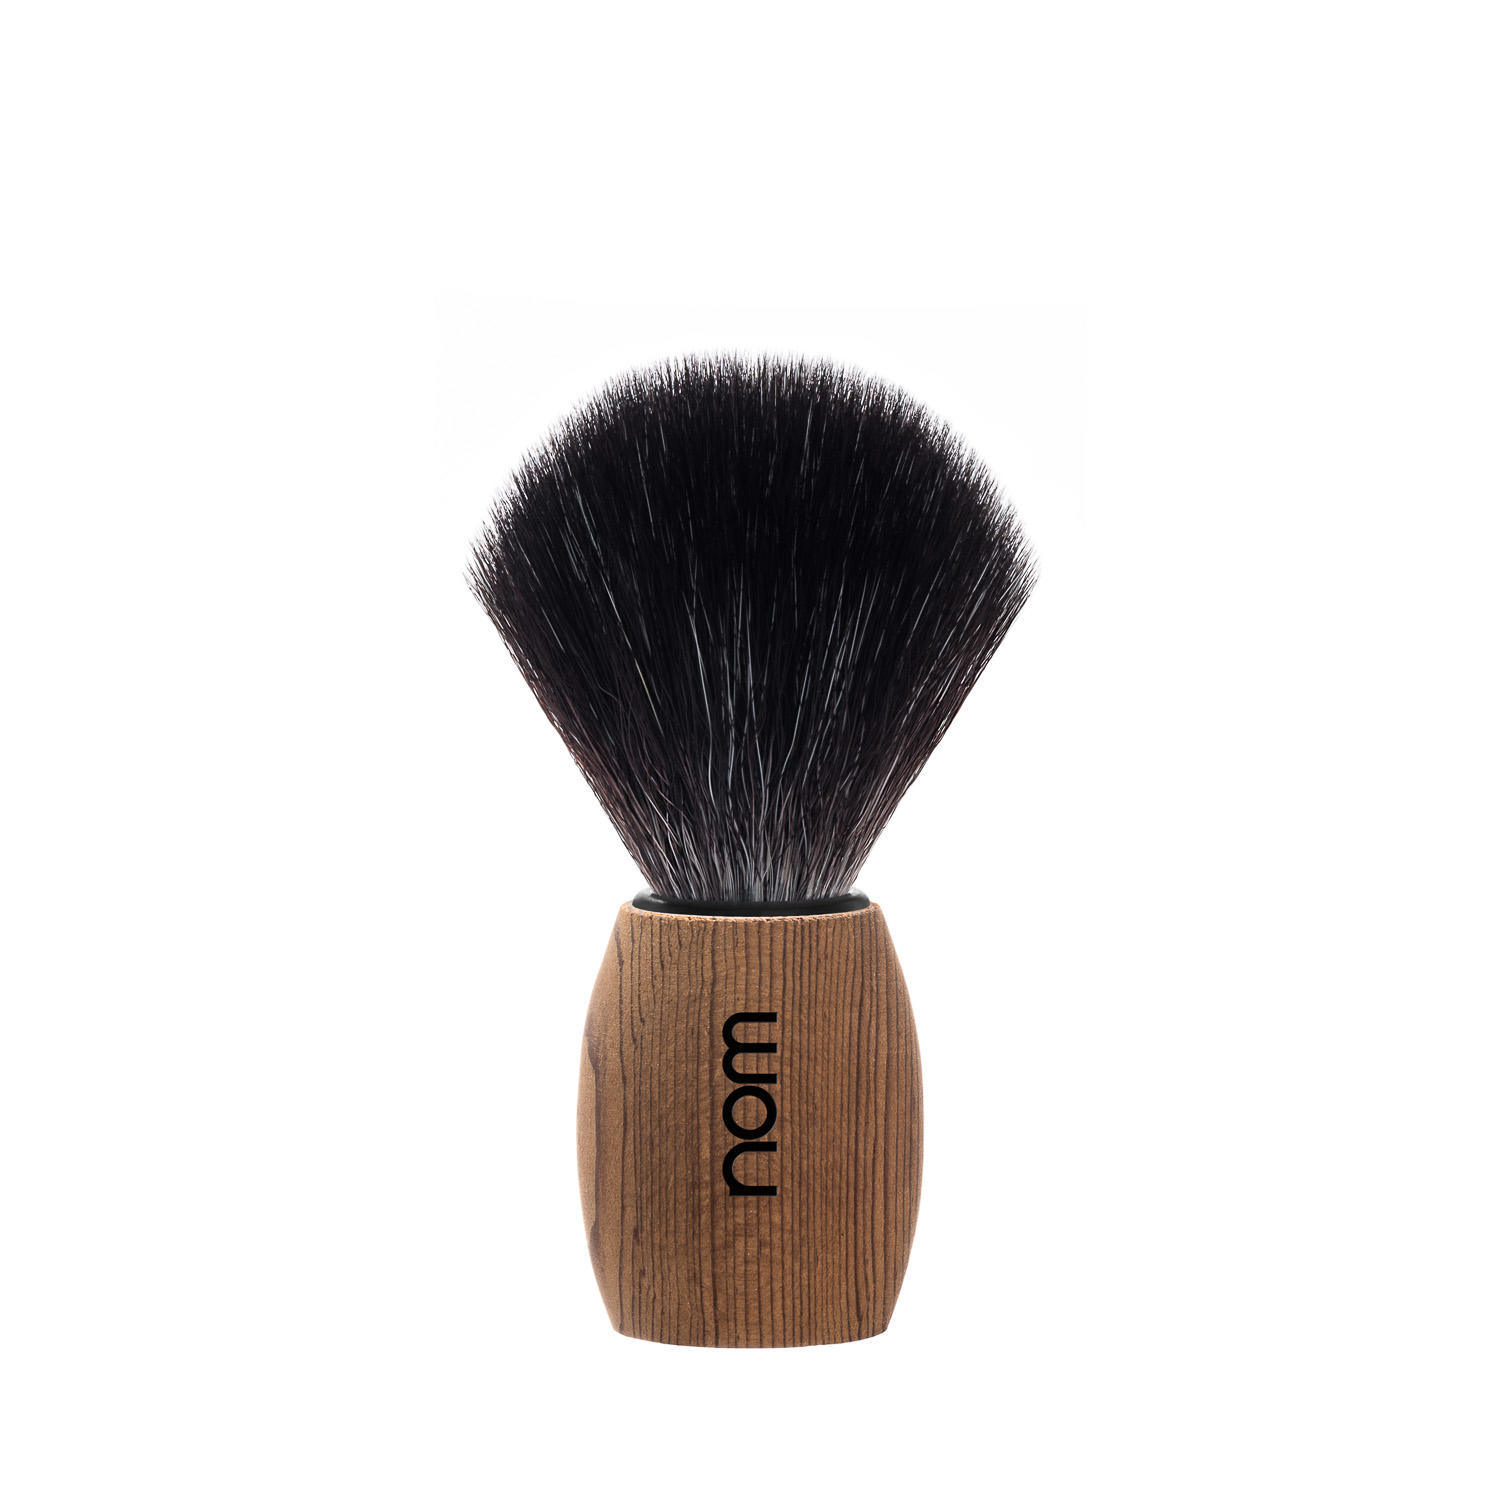 OLE21PS nom OLE, Pure Spruce, Black Fibre, Shaving Brush